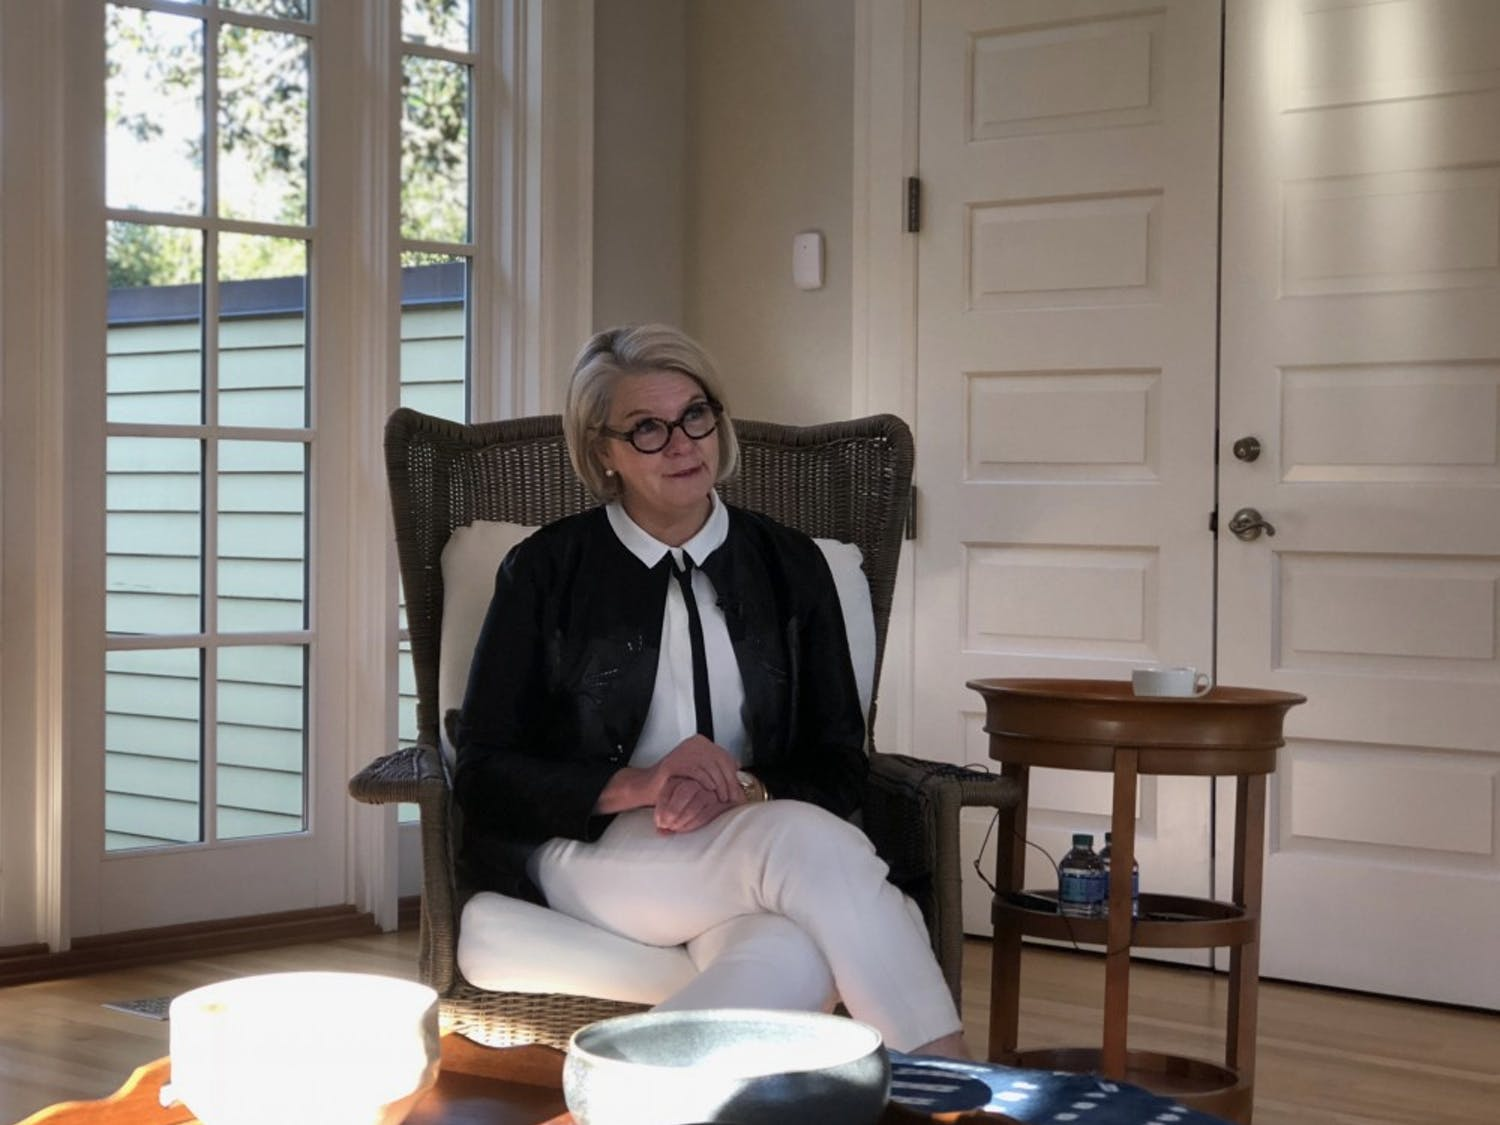 UNC-system President Margaret Spellings met with reporters on Wednesday to discuss her early resignation, Silent Sam and her relocation to North Carolina.